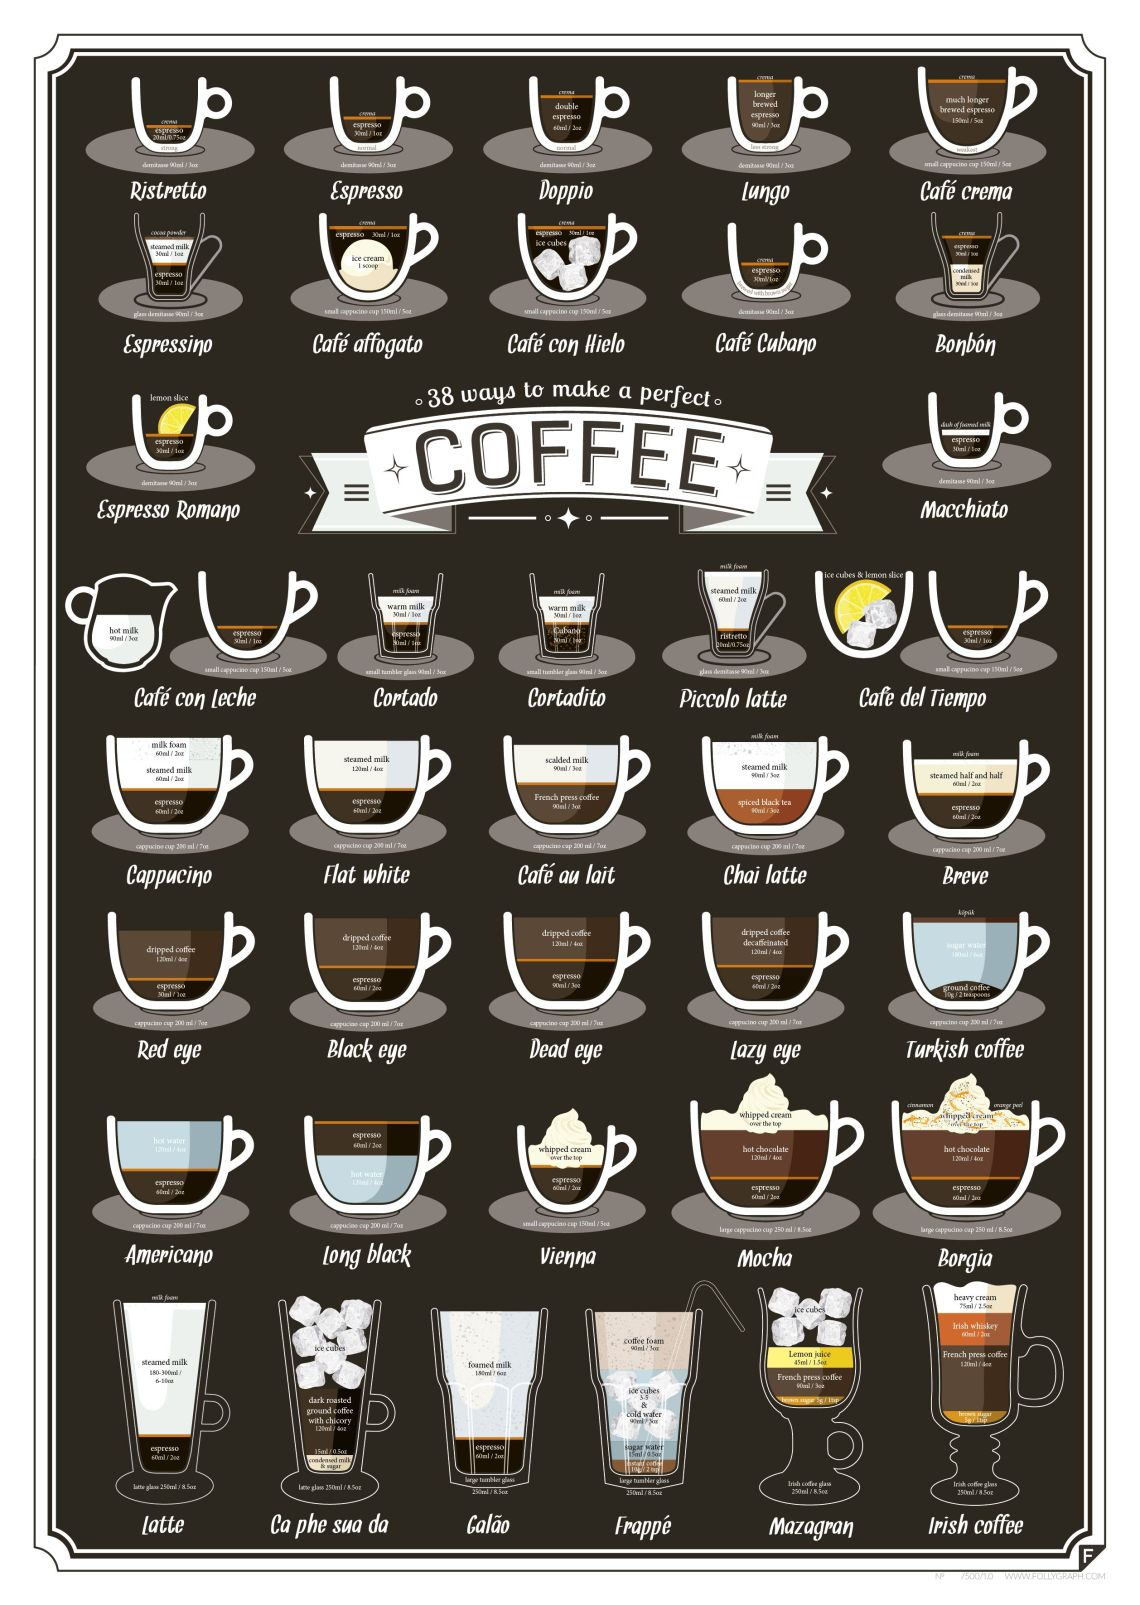 Image Result For How Many Cups Of Coffee Should You Have A Day